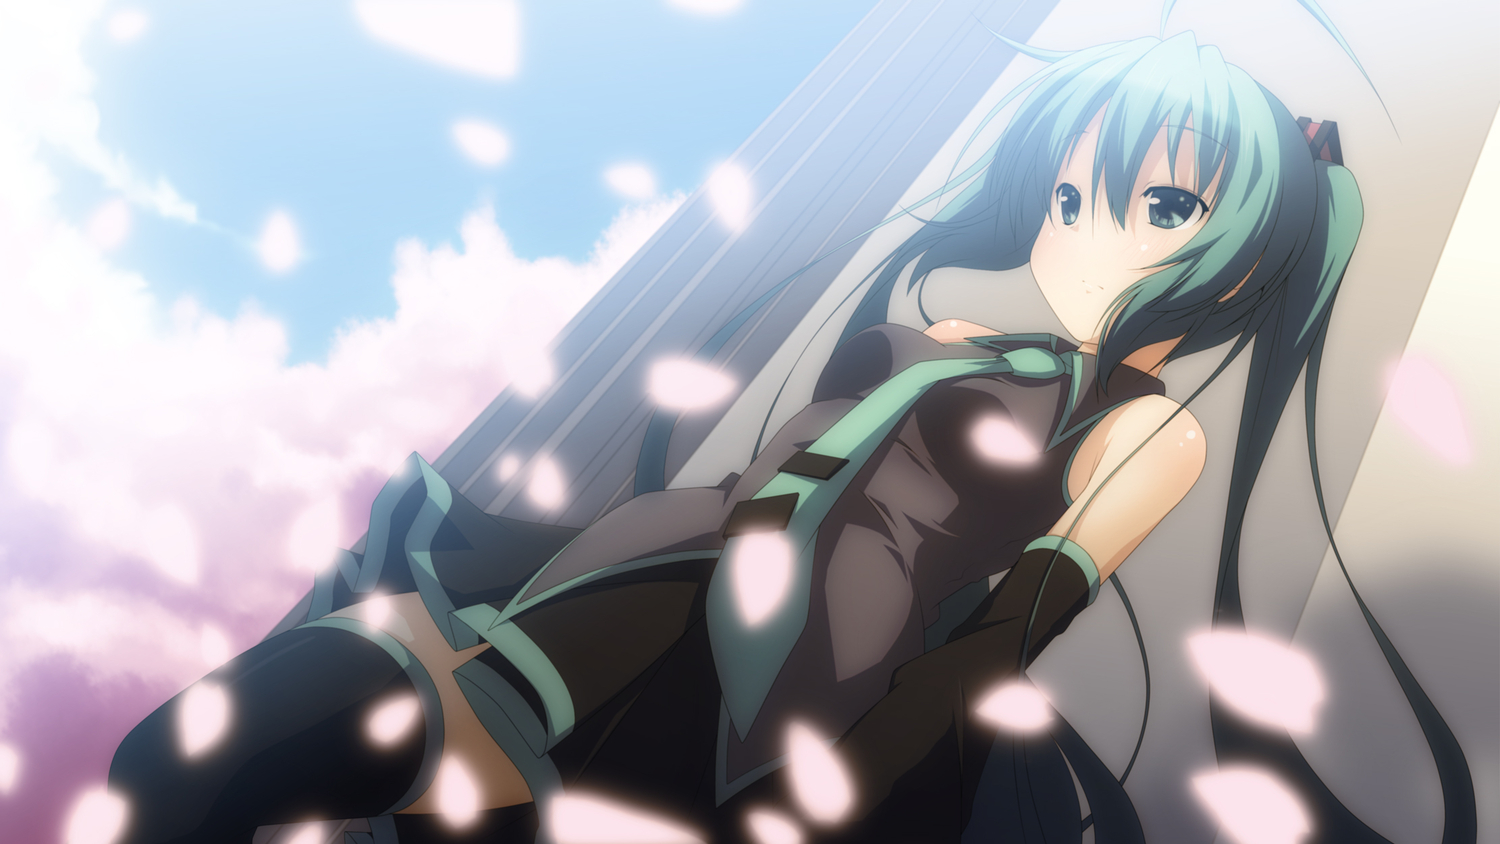 blush cherry_blossoms green_eyes green_hair hatsune_miku long_hair petals skirt sky thighhighs tie twintails vocaloid yuzuki_kei